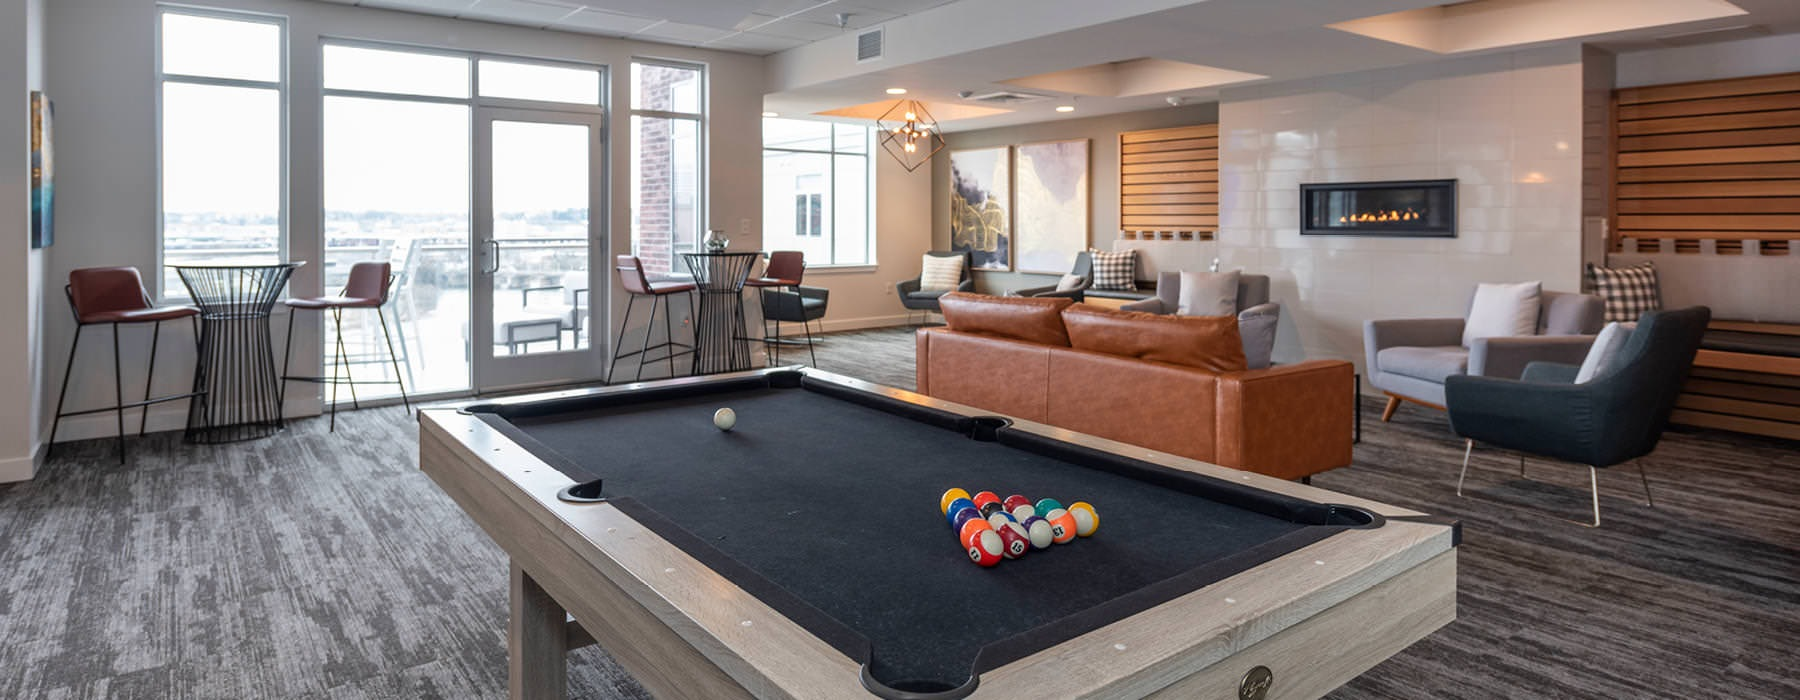 billiards table in spacious residents' lounge